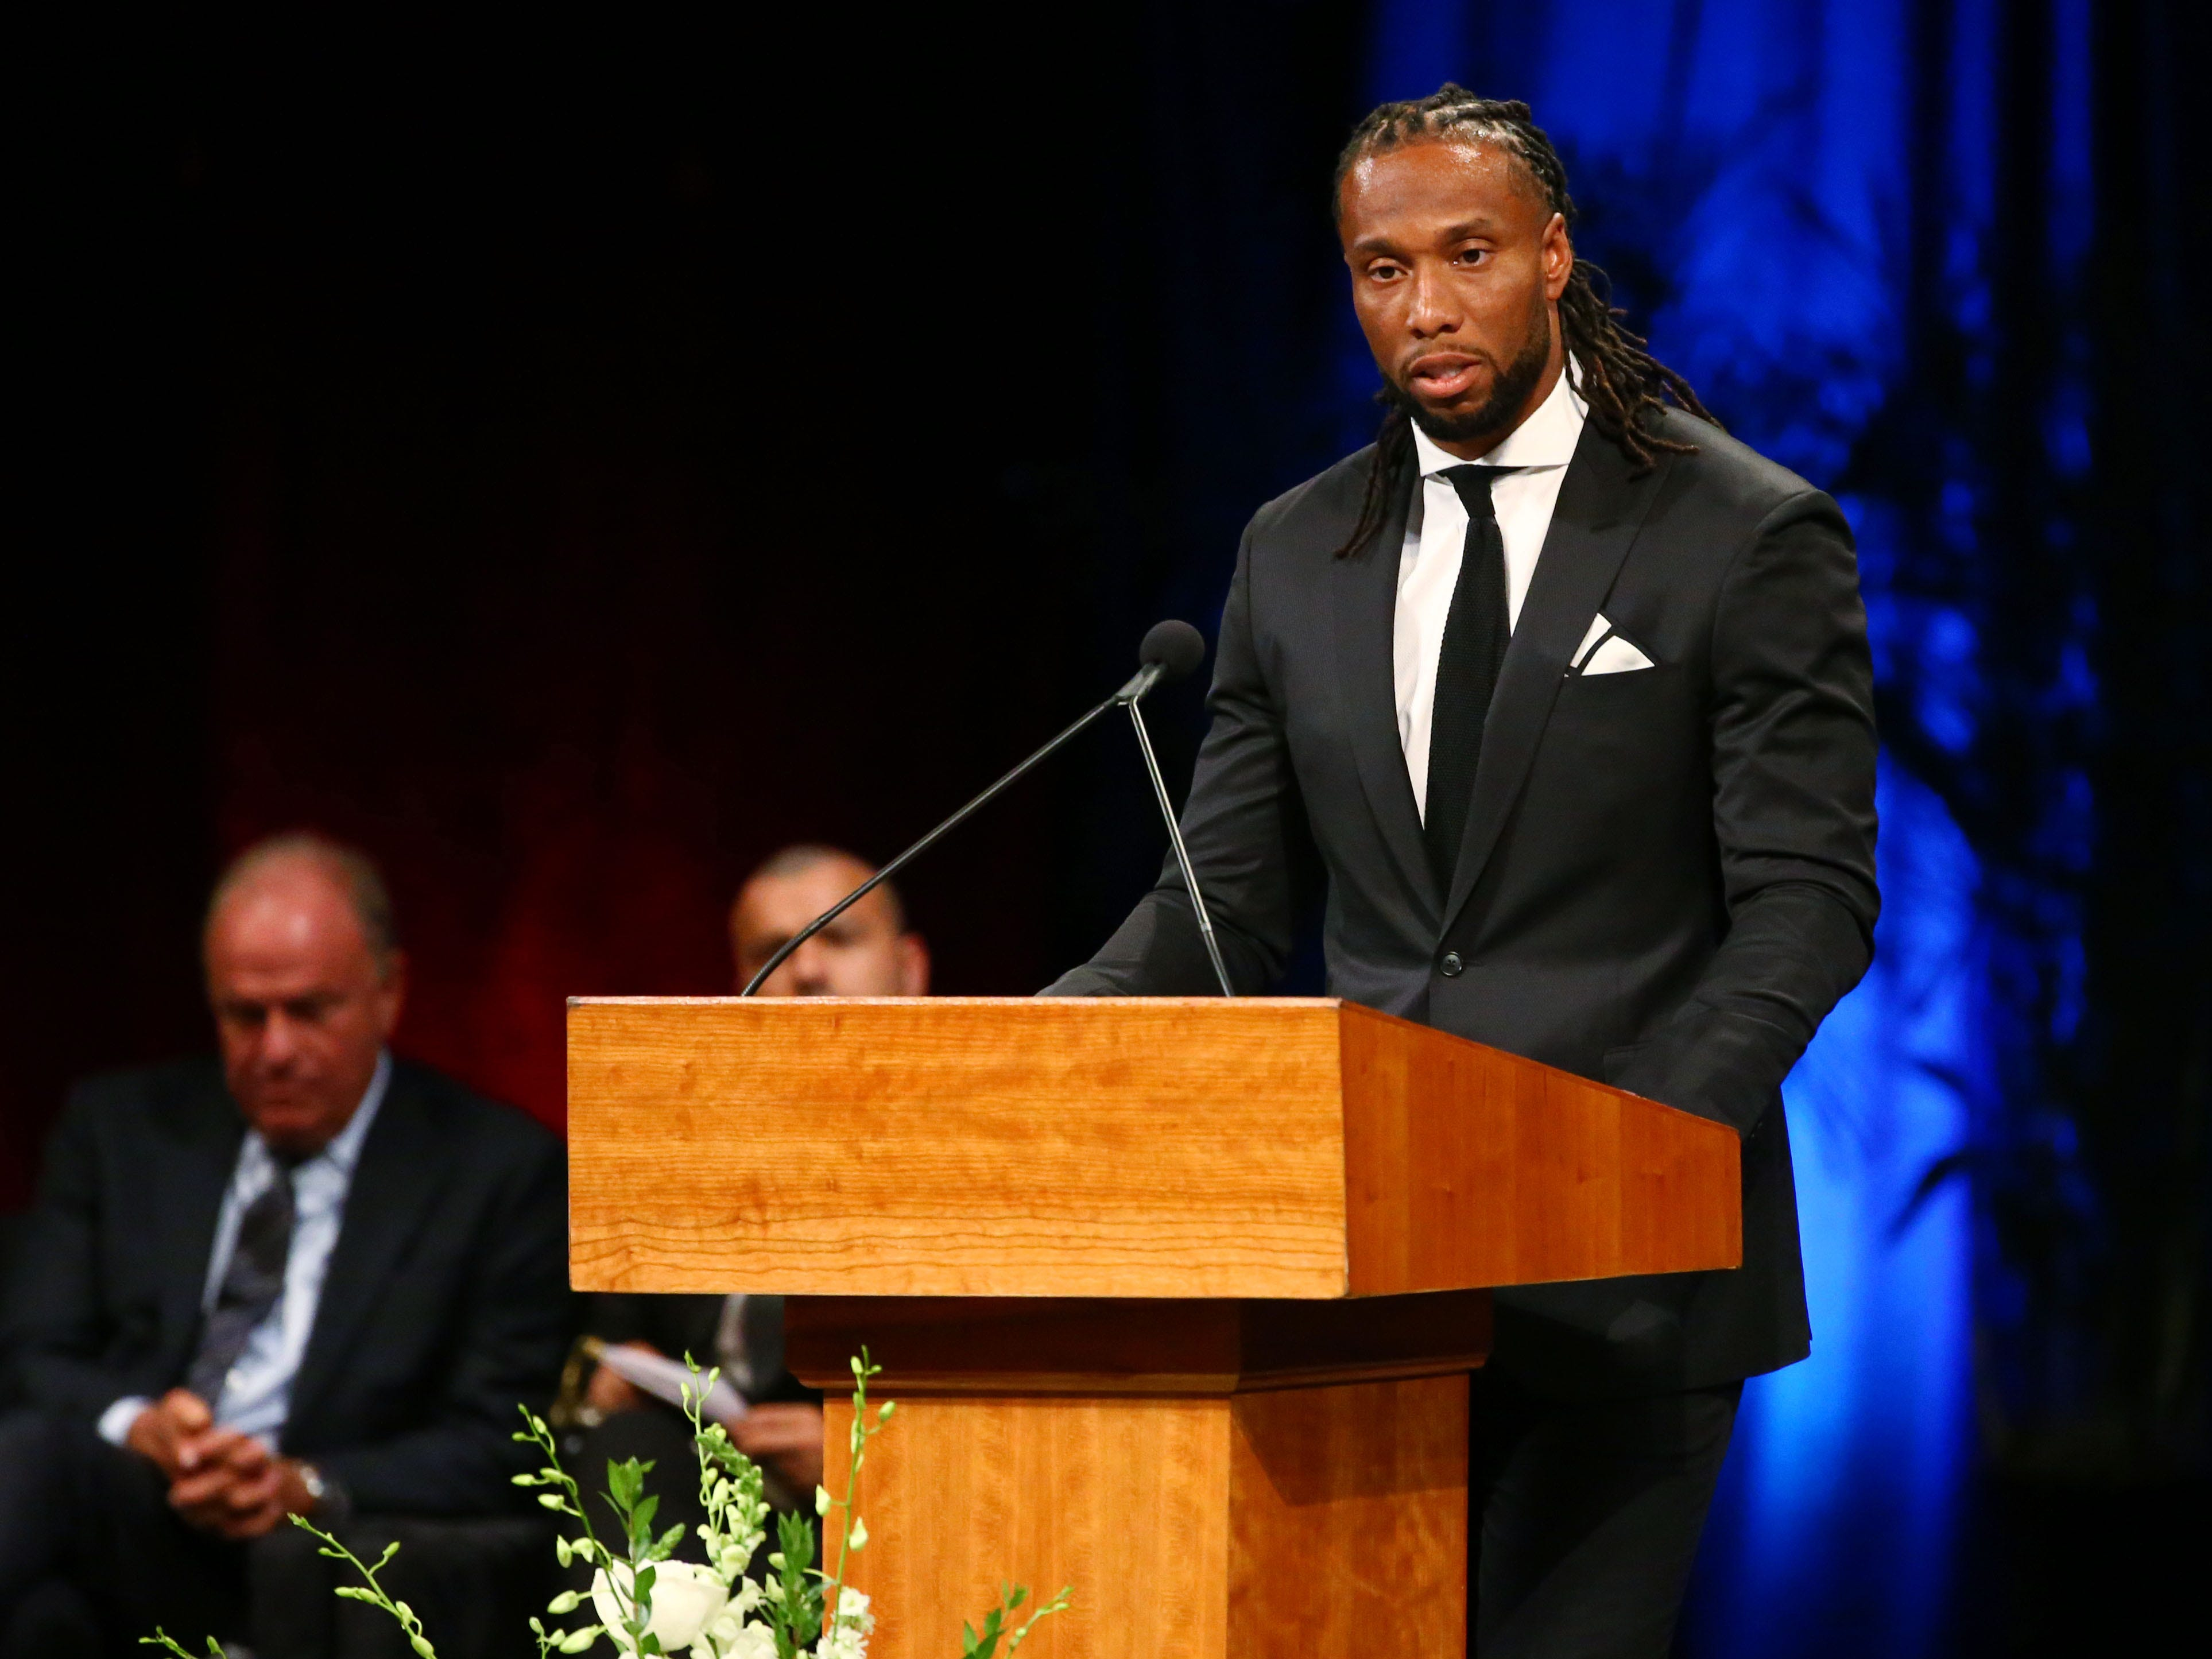 Arizona Cardinals wide receiver Larry Fitzgerald pays tribute to Sen. John McCain during a memorial service at North Phoenix Baptist Church, Aug. 30, 2018, in Phoenix.